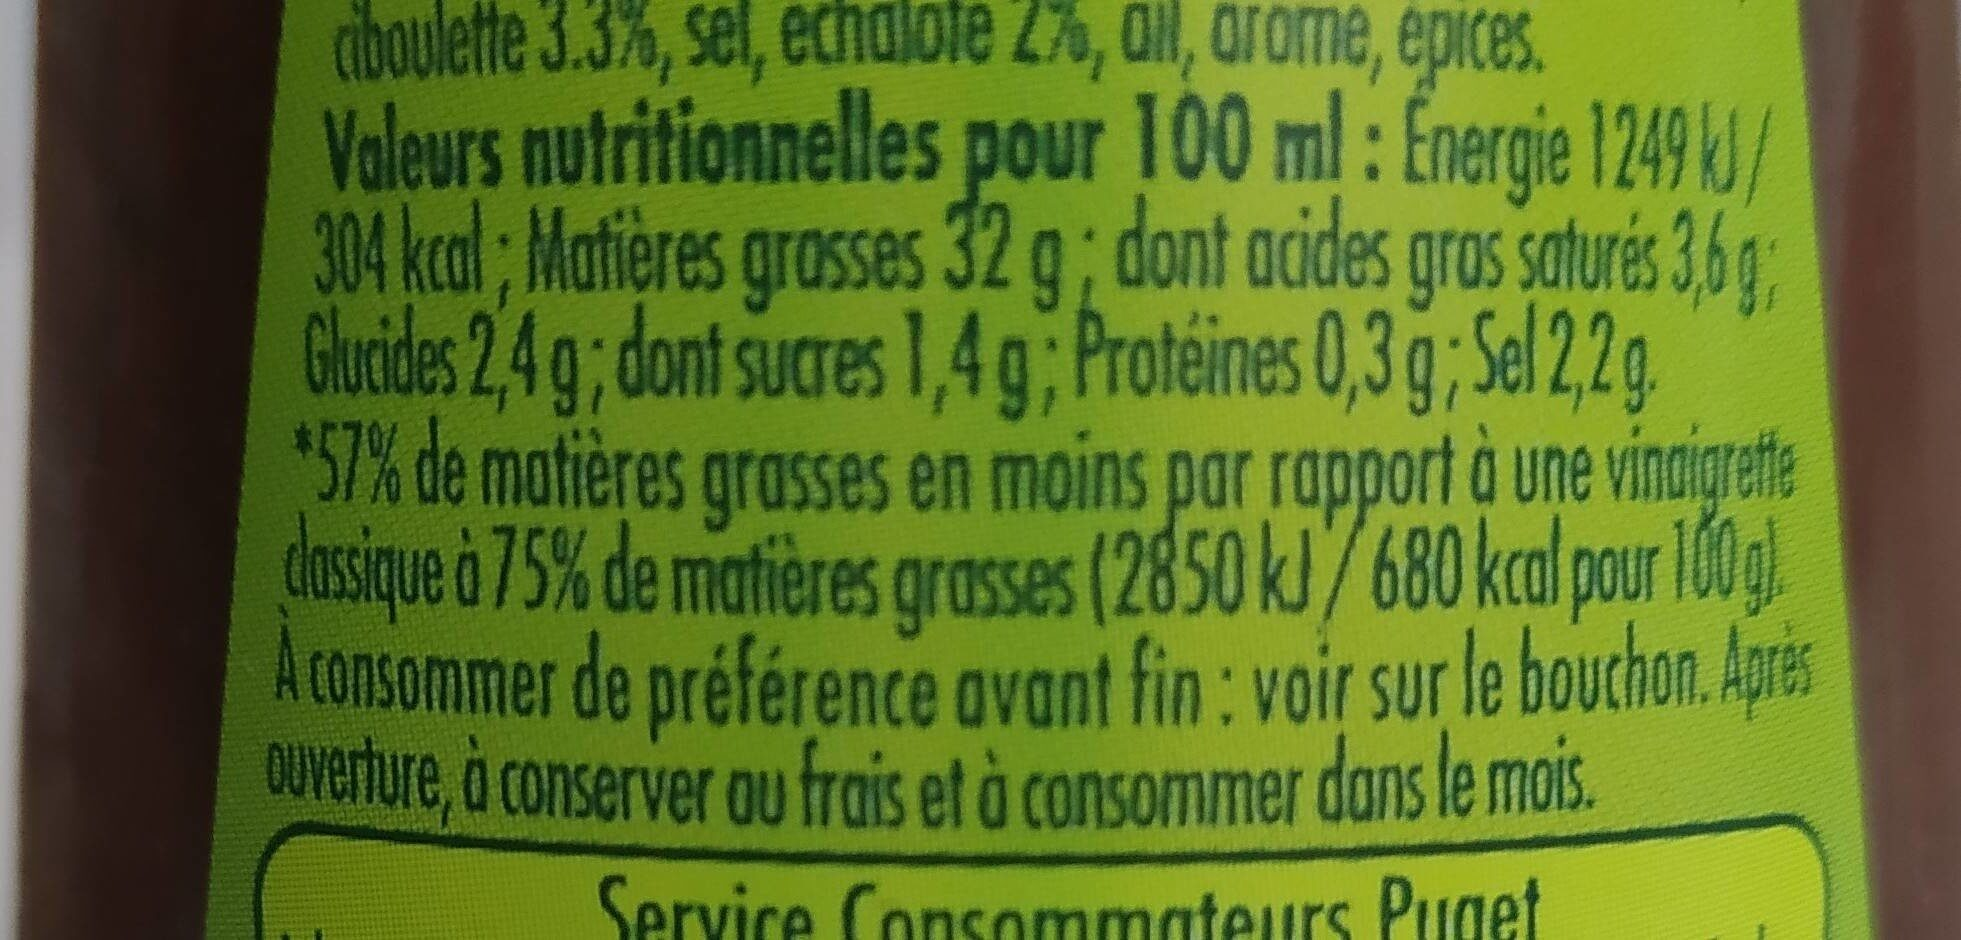 Vinaigrette balsamique huile d'olive - Nutrition facts - fr